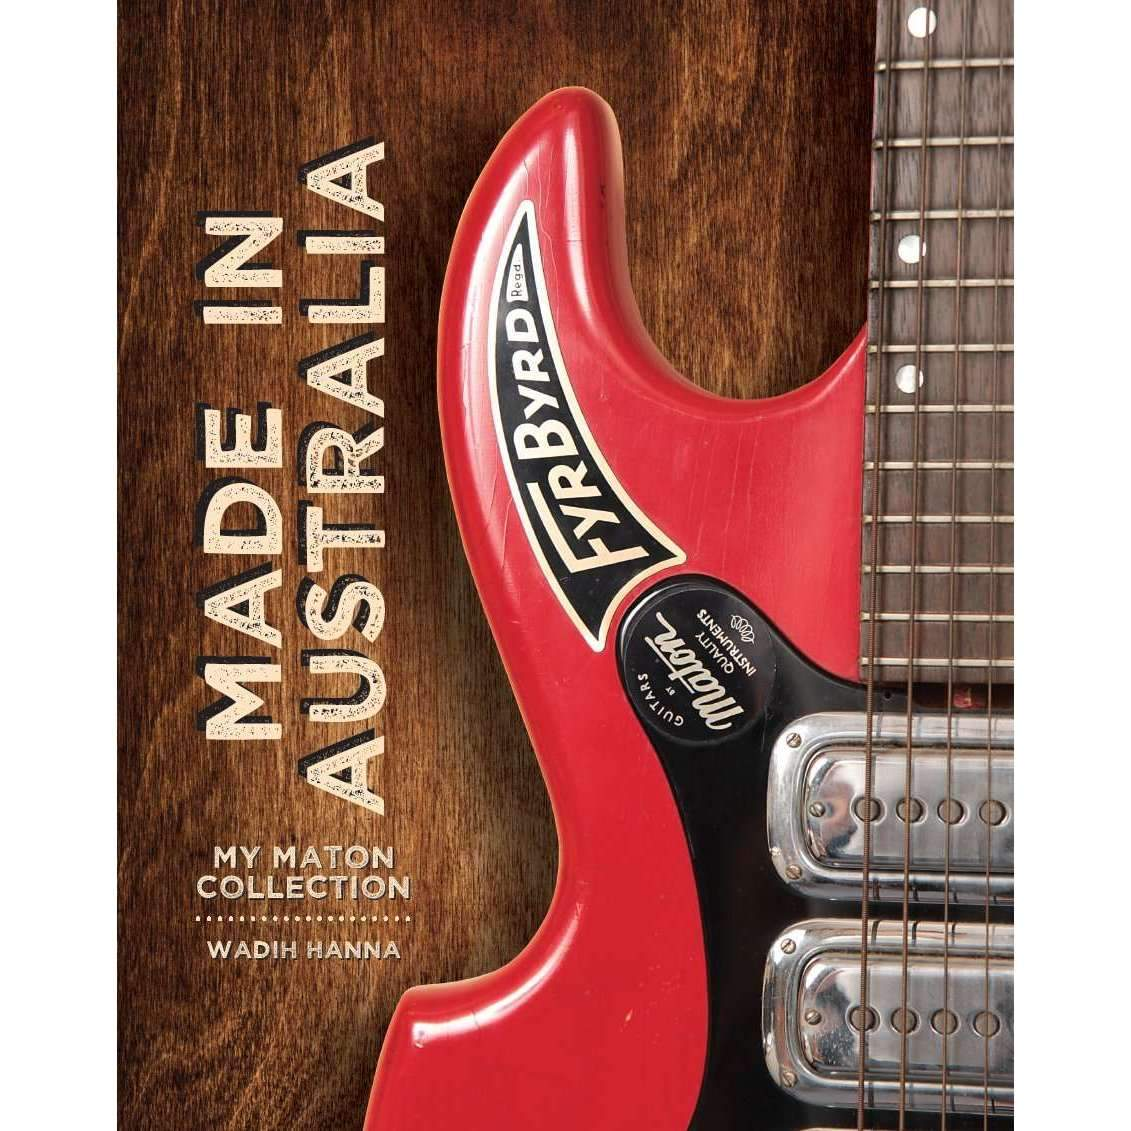 Wadih Hanna Made In Australia: My Maton Collection - Industrie Music